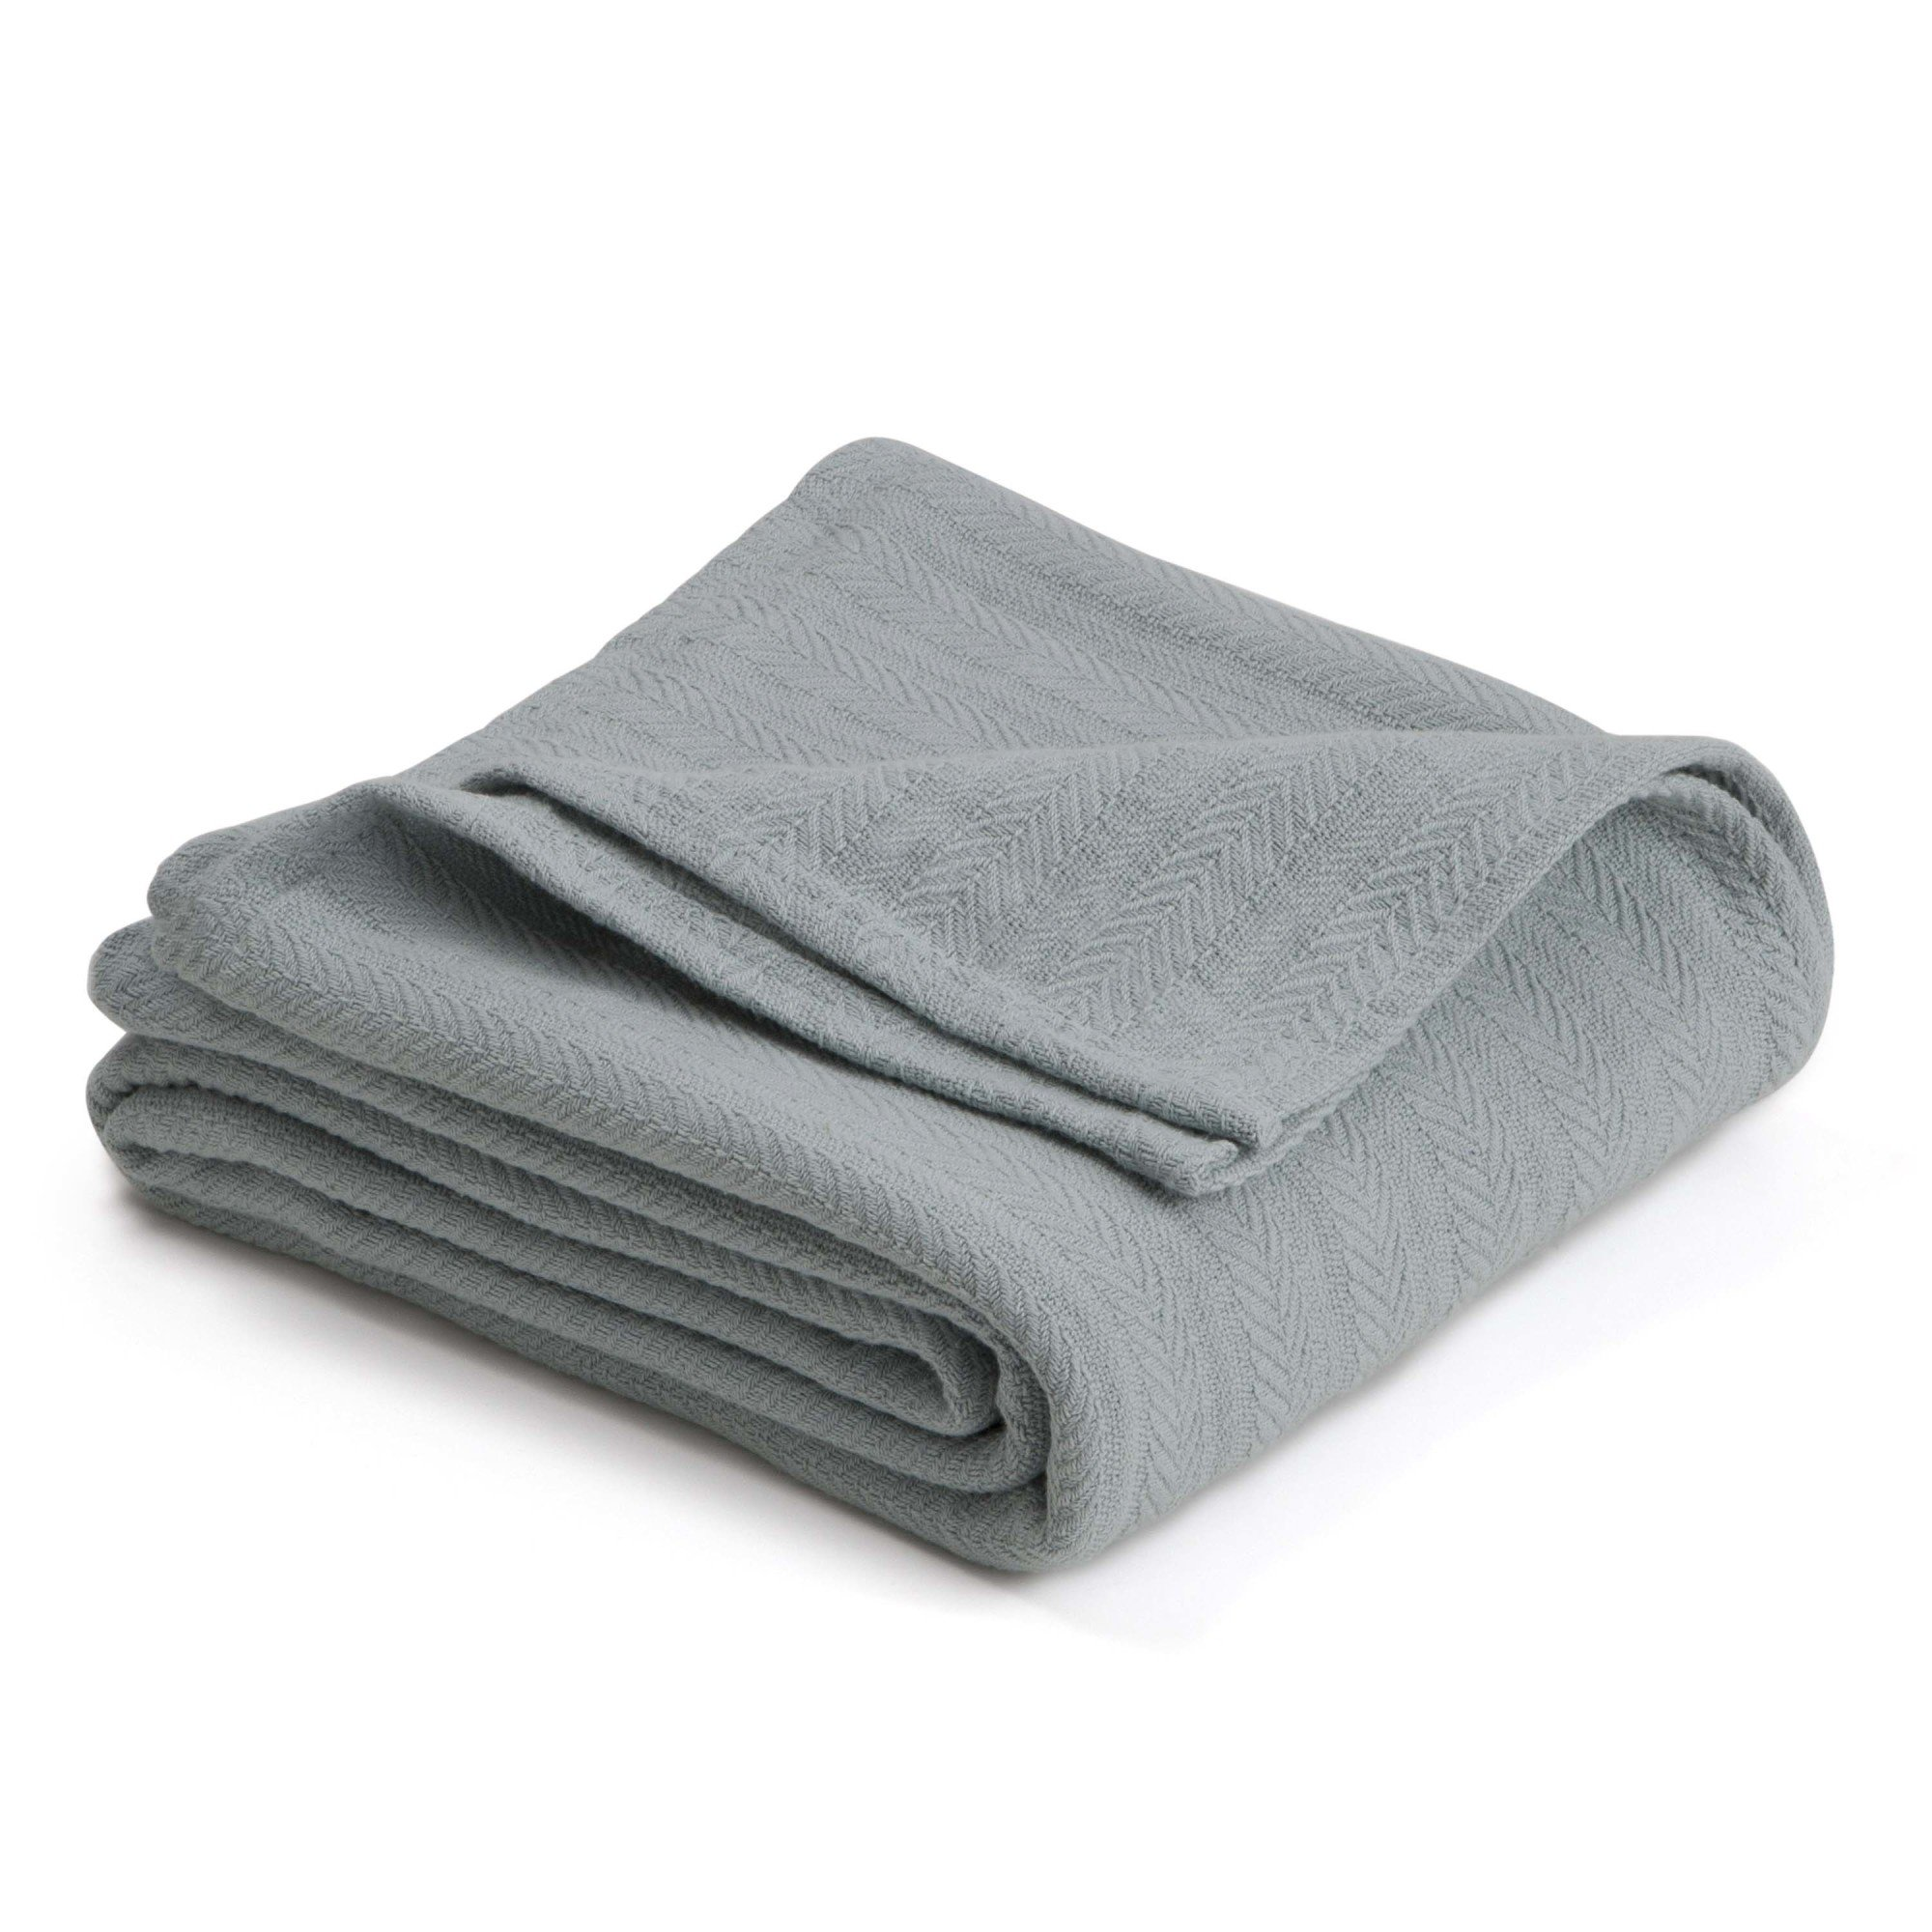 WestPoint Home COTTON WOVEN BLANKET BY VELLUX - Natural, Cozy, Warm, Chevron Textured, Pet-Friendly, All-Seasons - Gray Mist